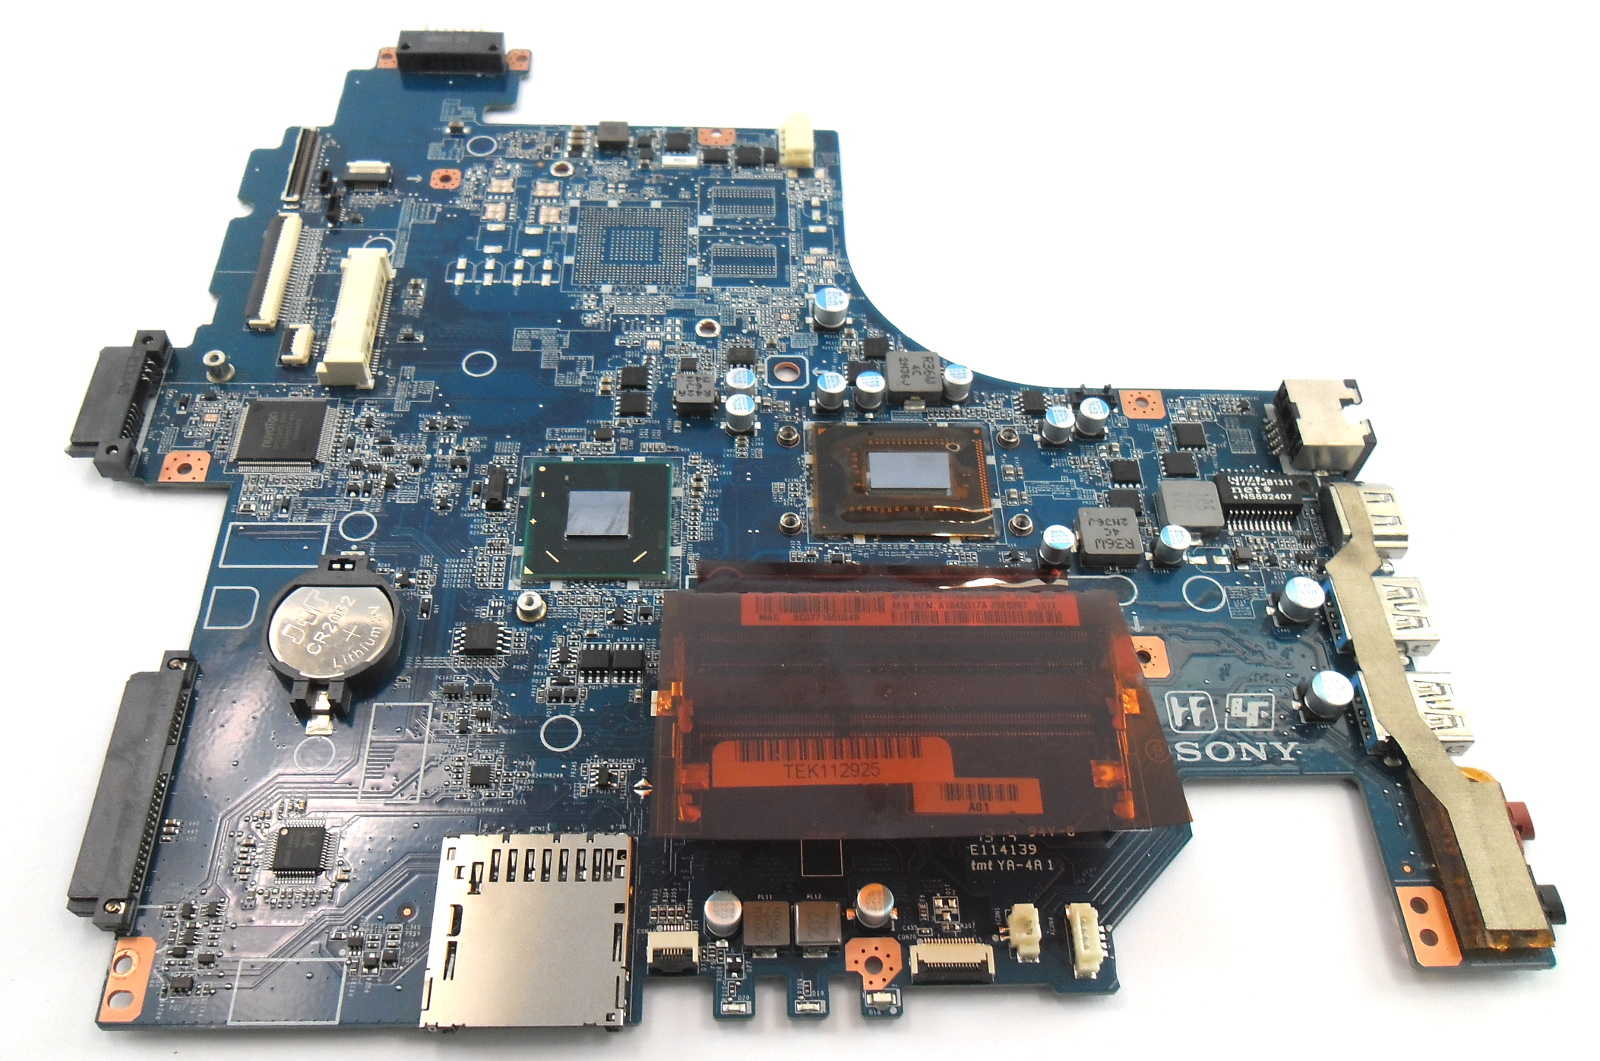 Sony Vaio SVF152 Laptop Motherboard A1945017A 31HK9MB0090 /w Core i3-3227U CPU